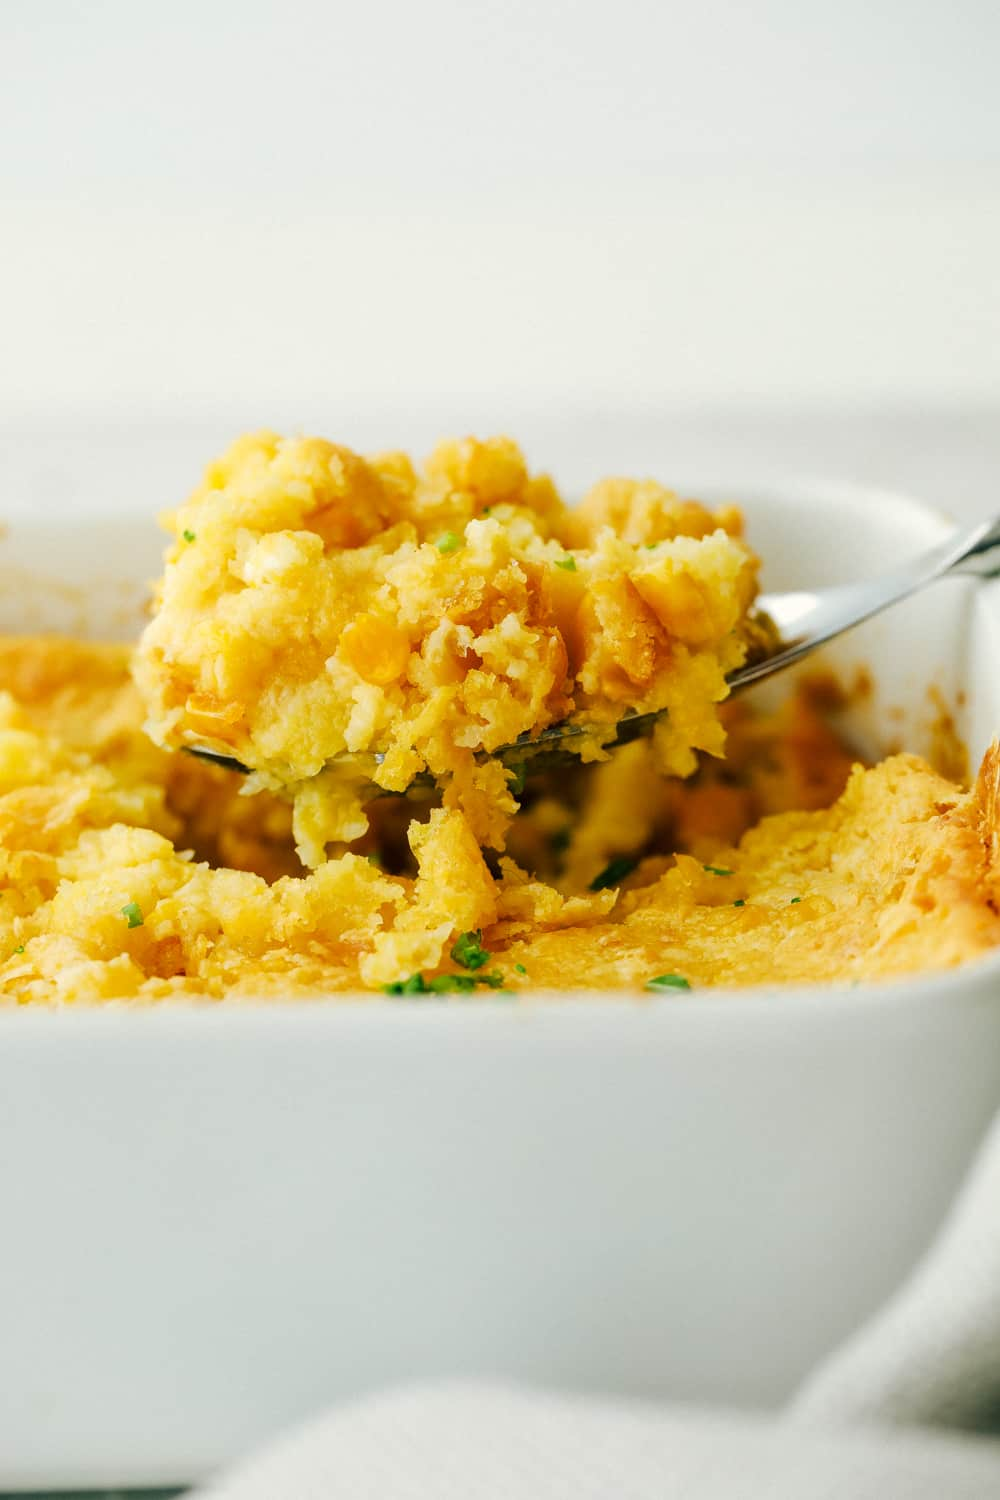 Creamy, inside, golden crust outside, 5 ingredient Corn Casserole.